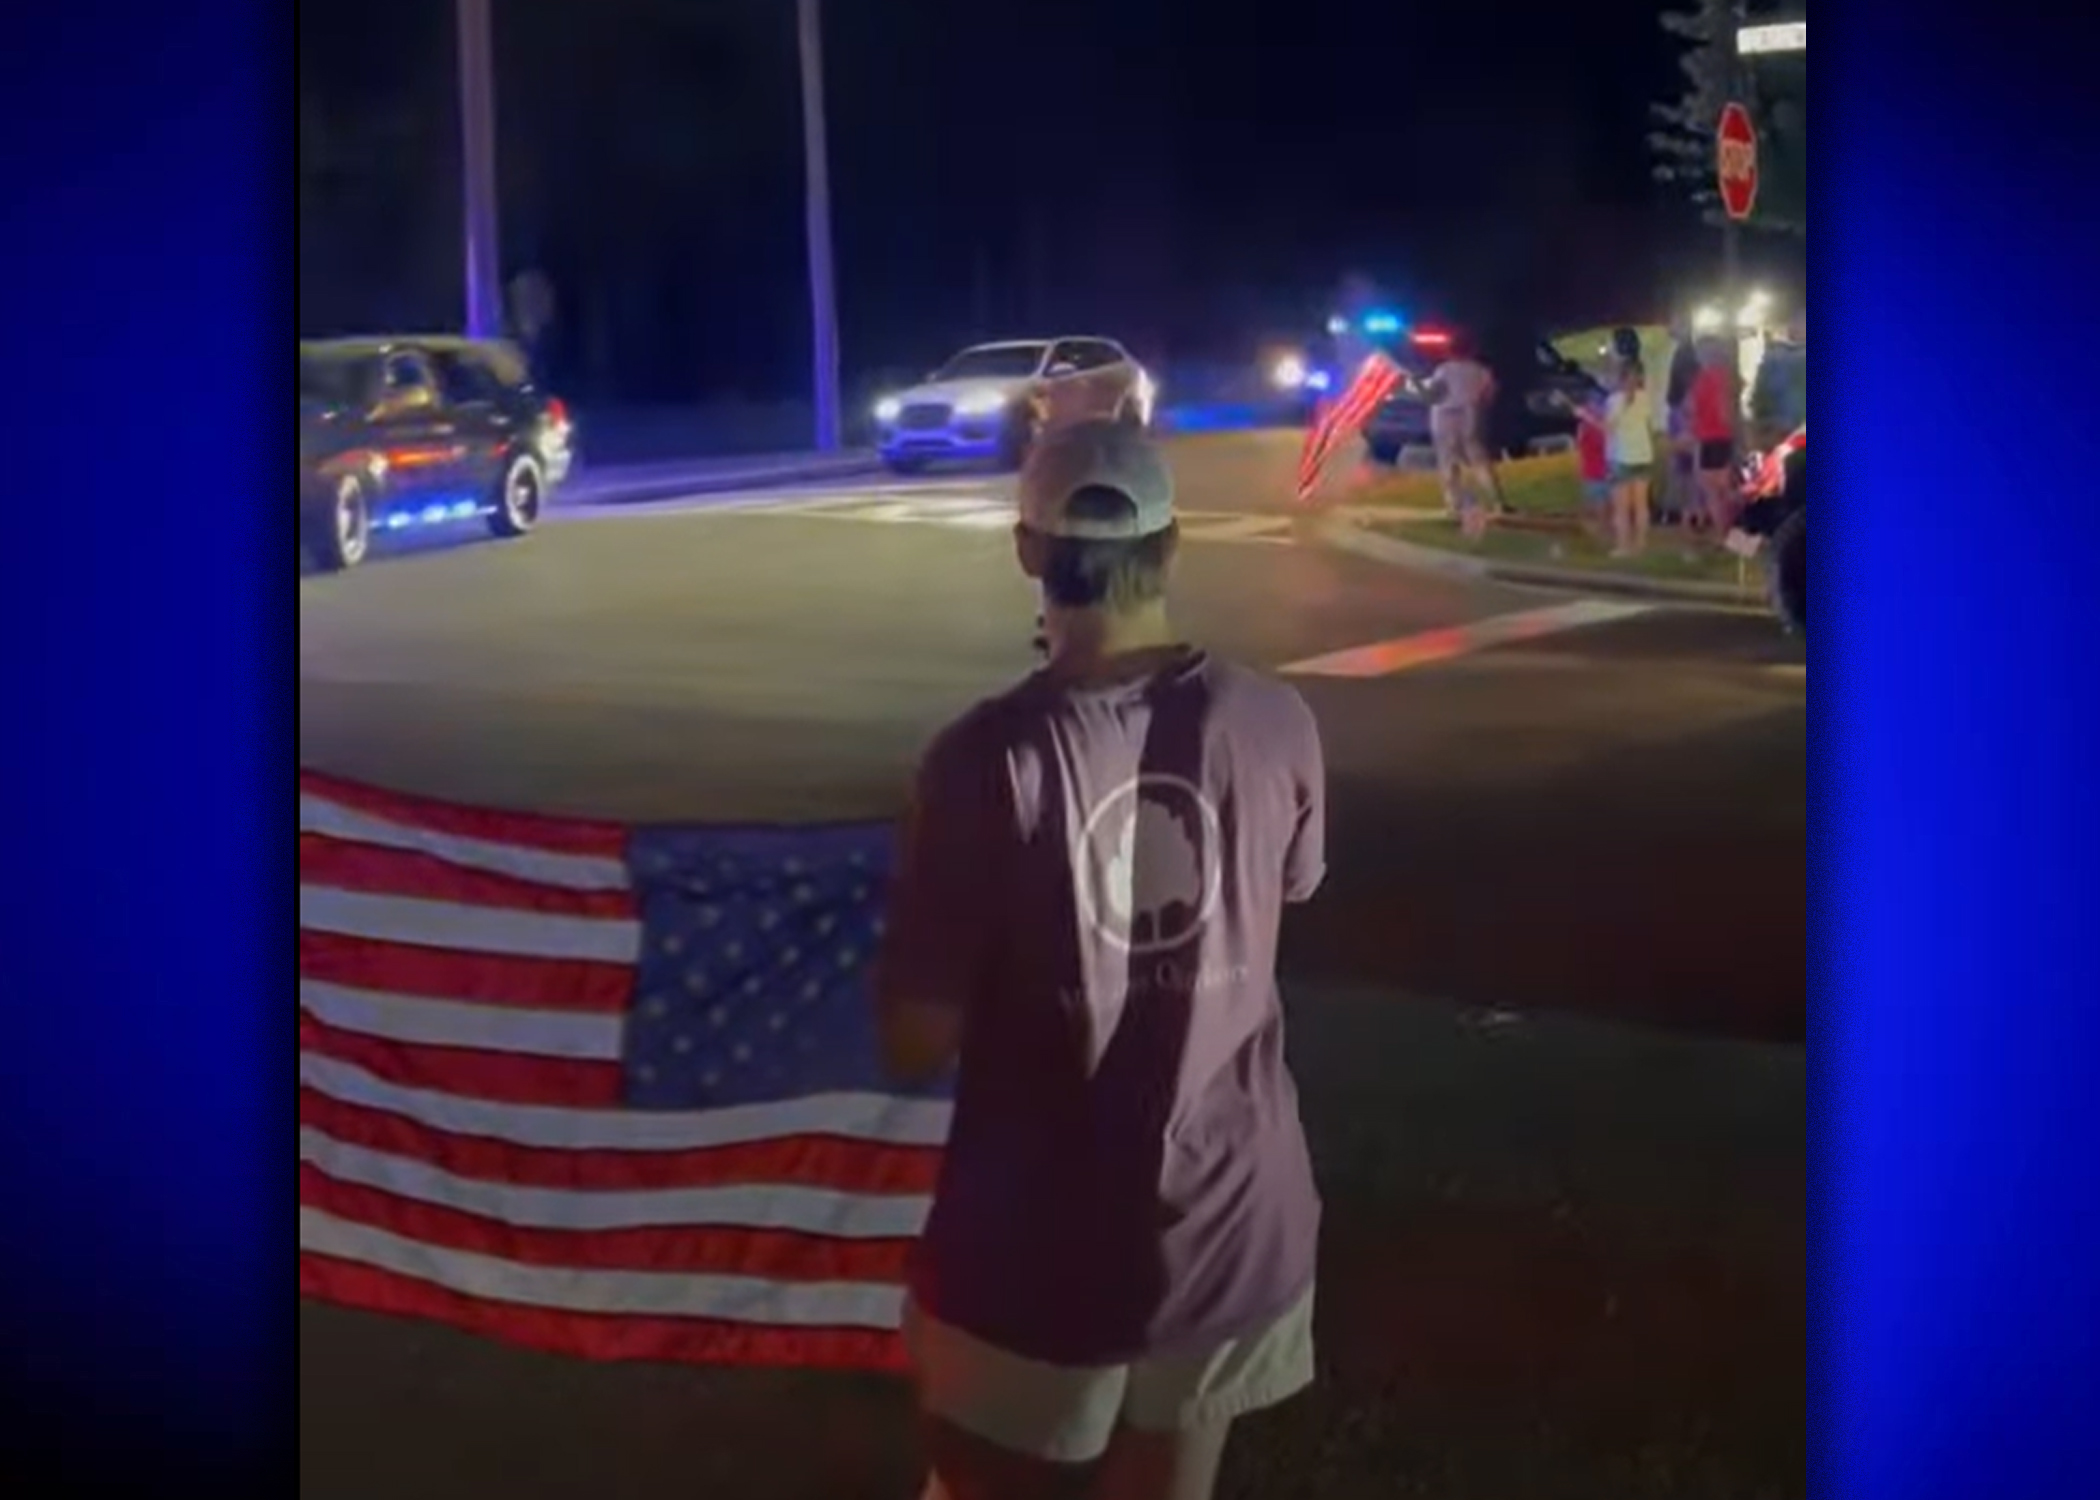 VIDEO: Hometown hero returns home to Trussville from Afghanistan